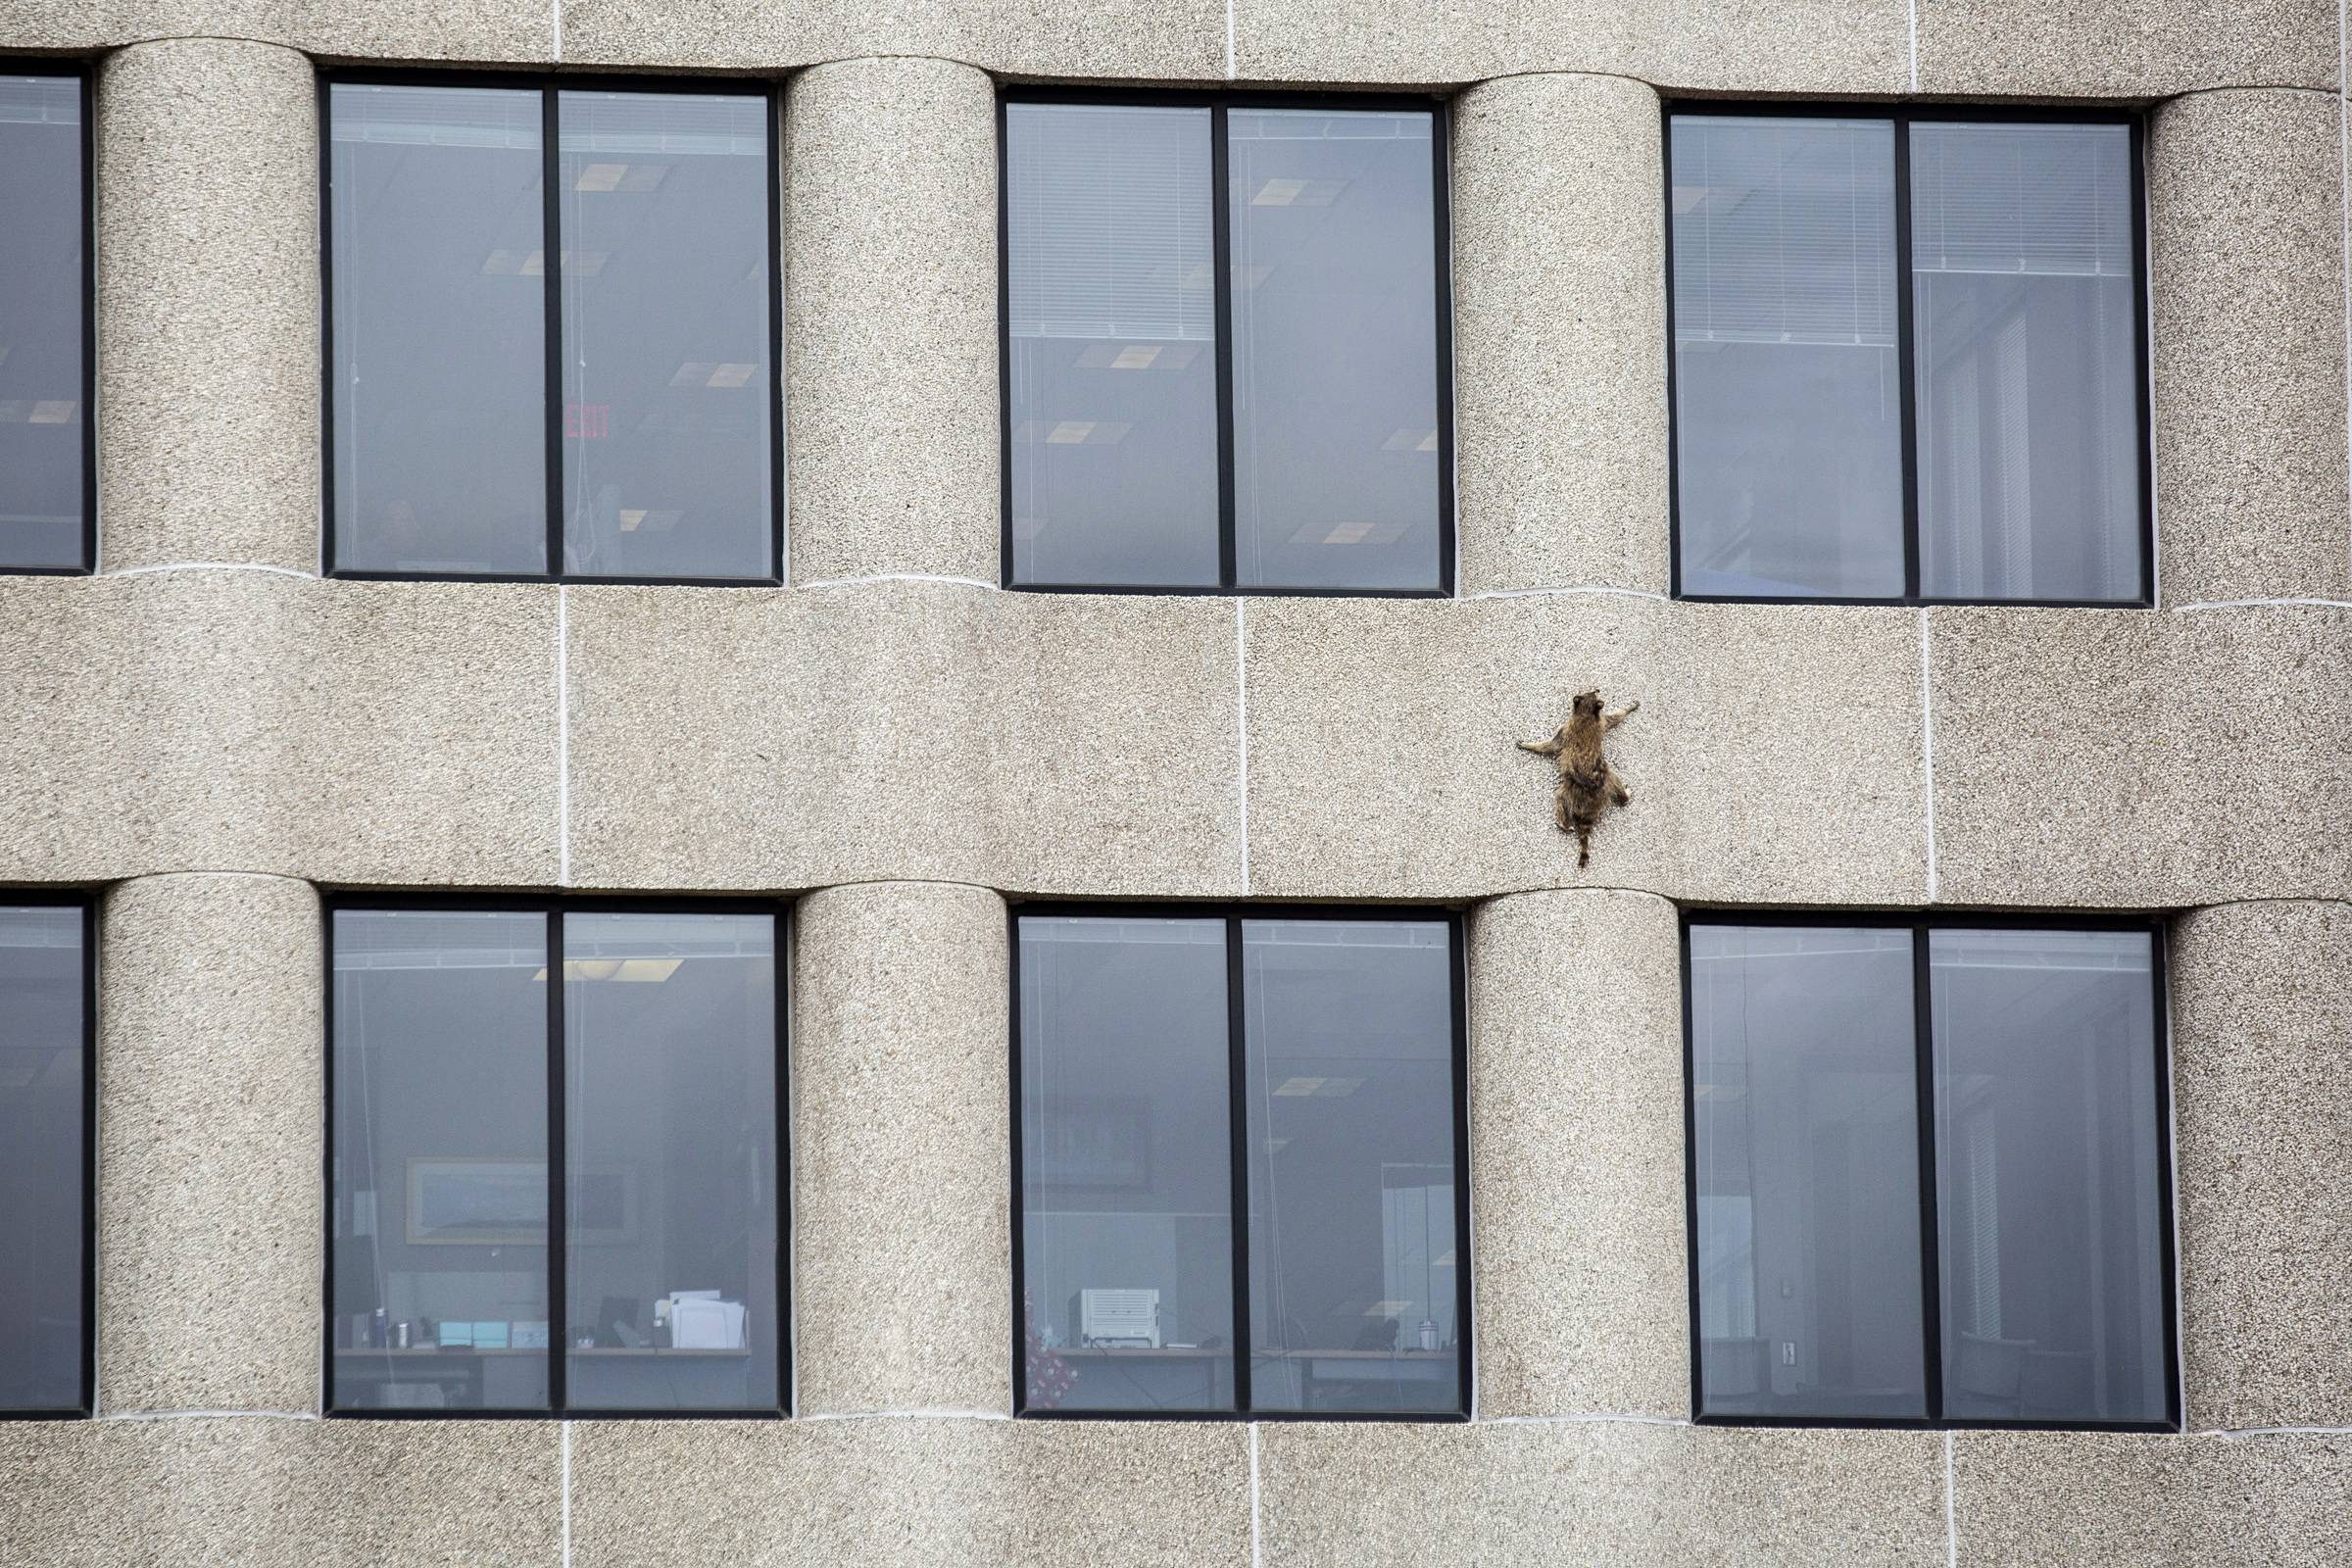 A raccoon scurries up the side of the UBS Tower in St. Paul.